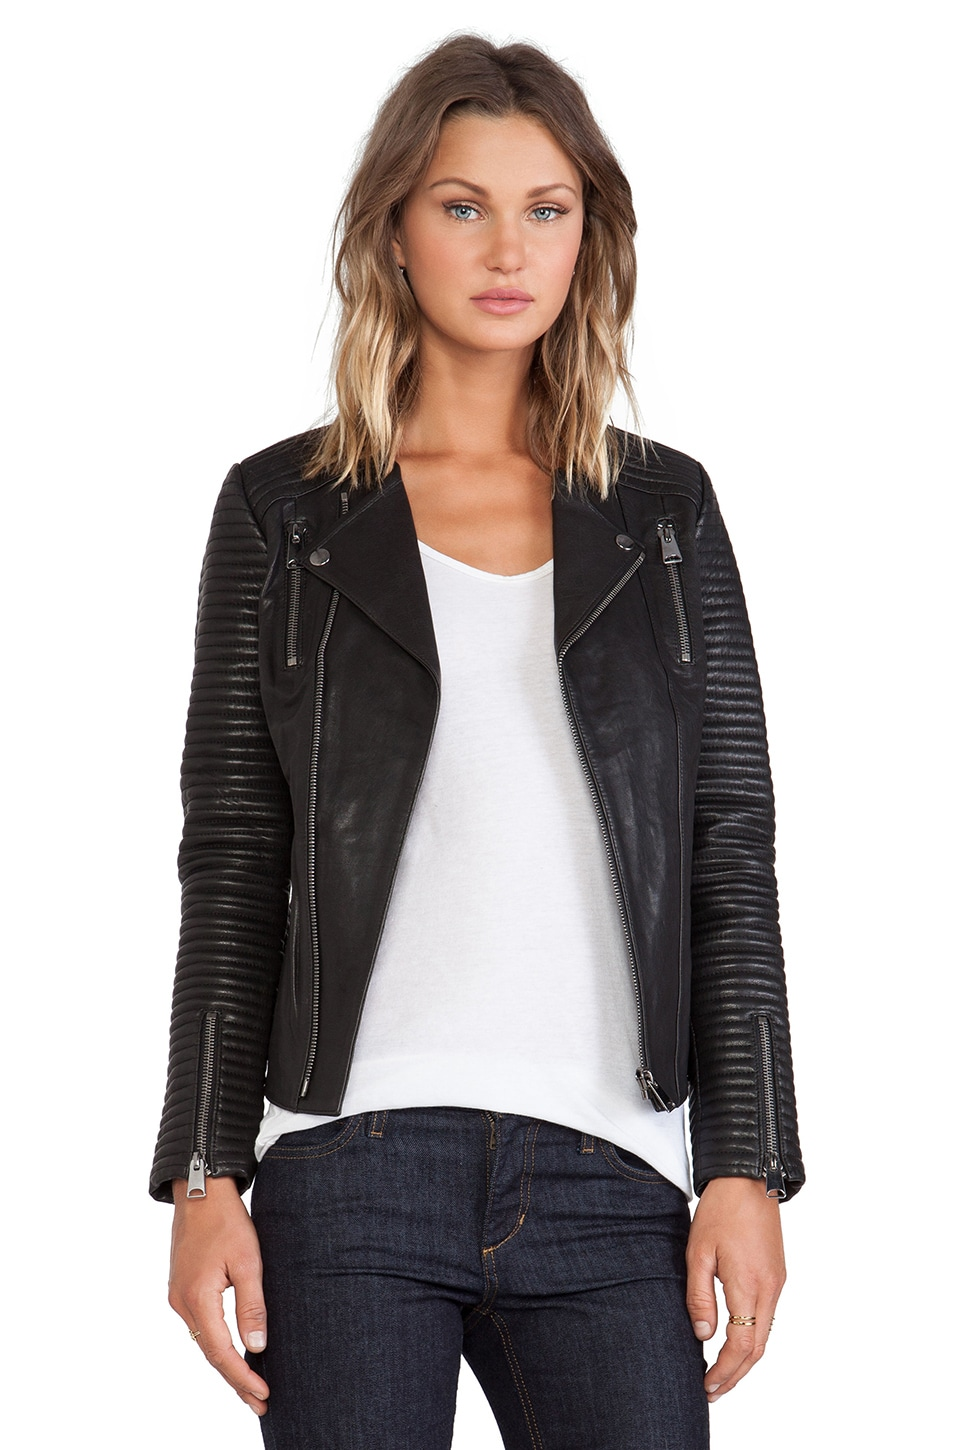 ANINE BING Classic Leather Jacket in Black | REVOLVE